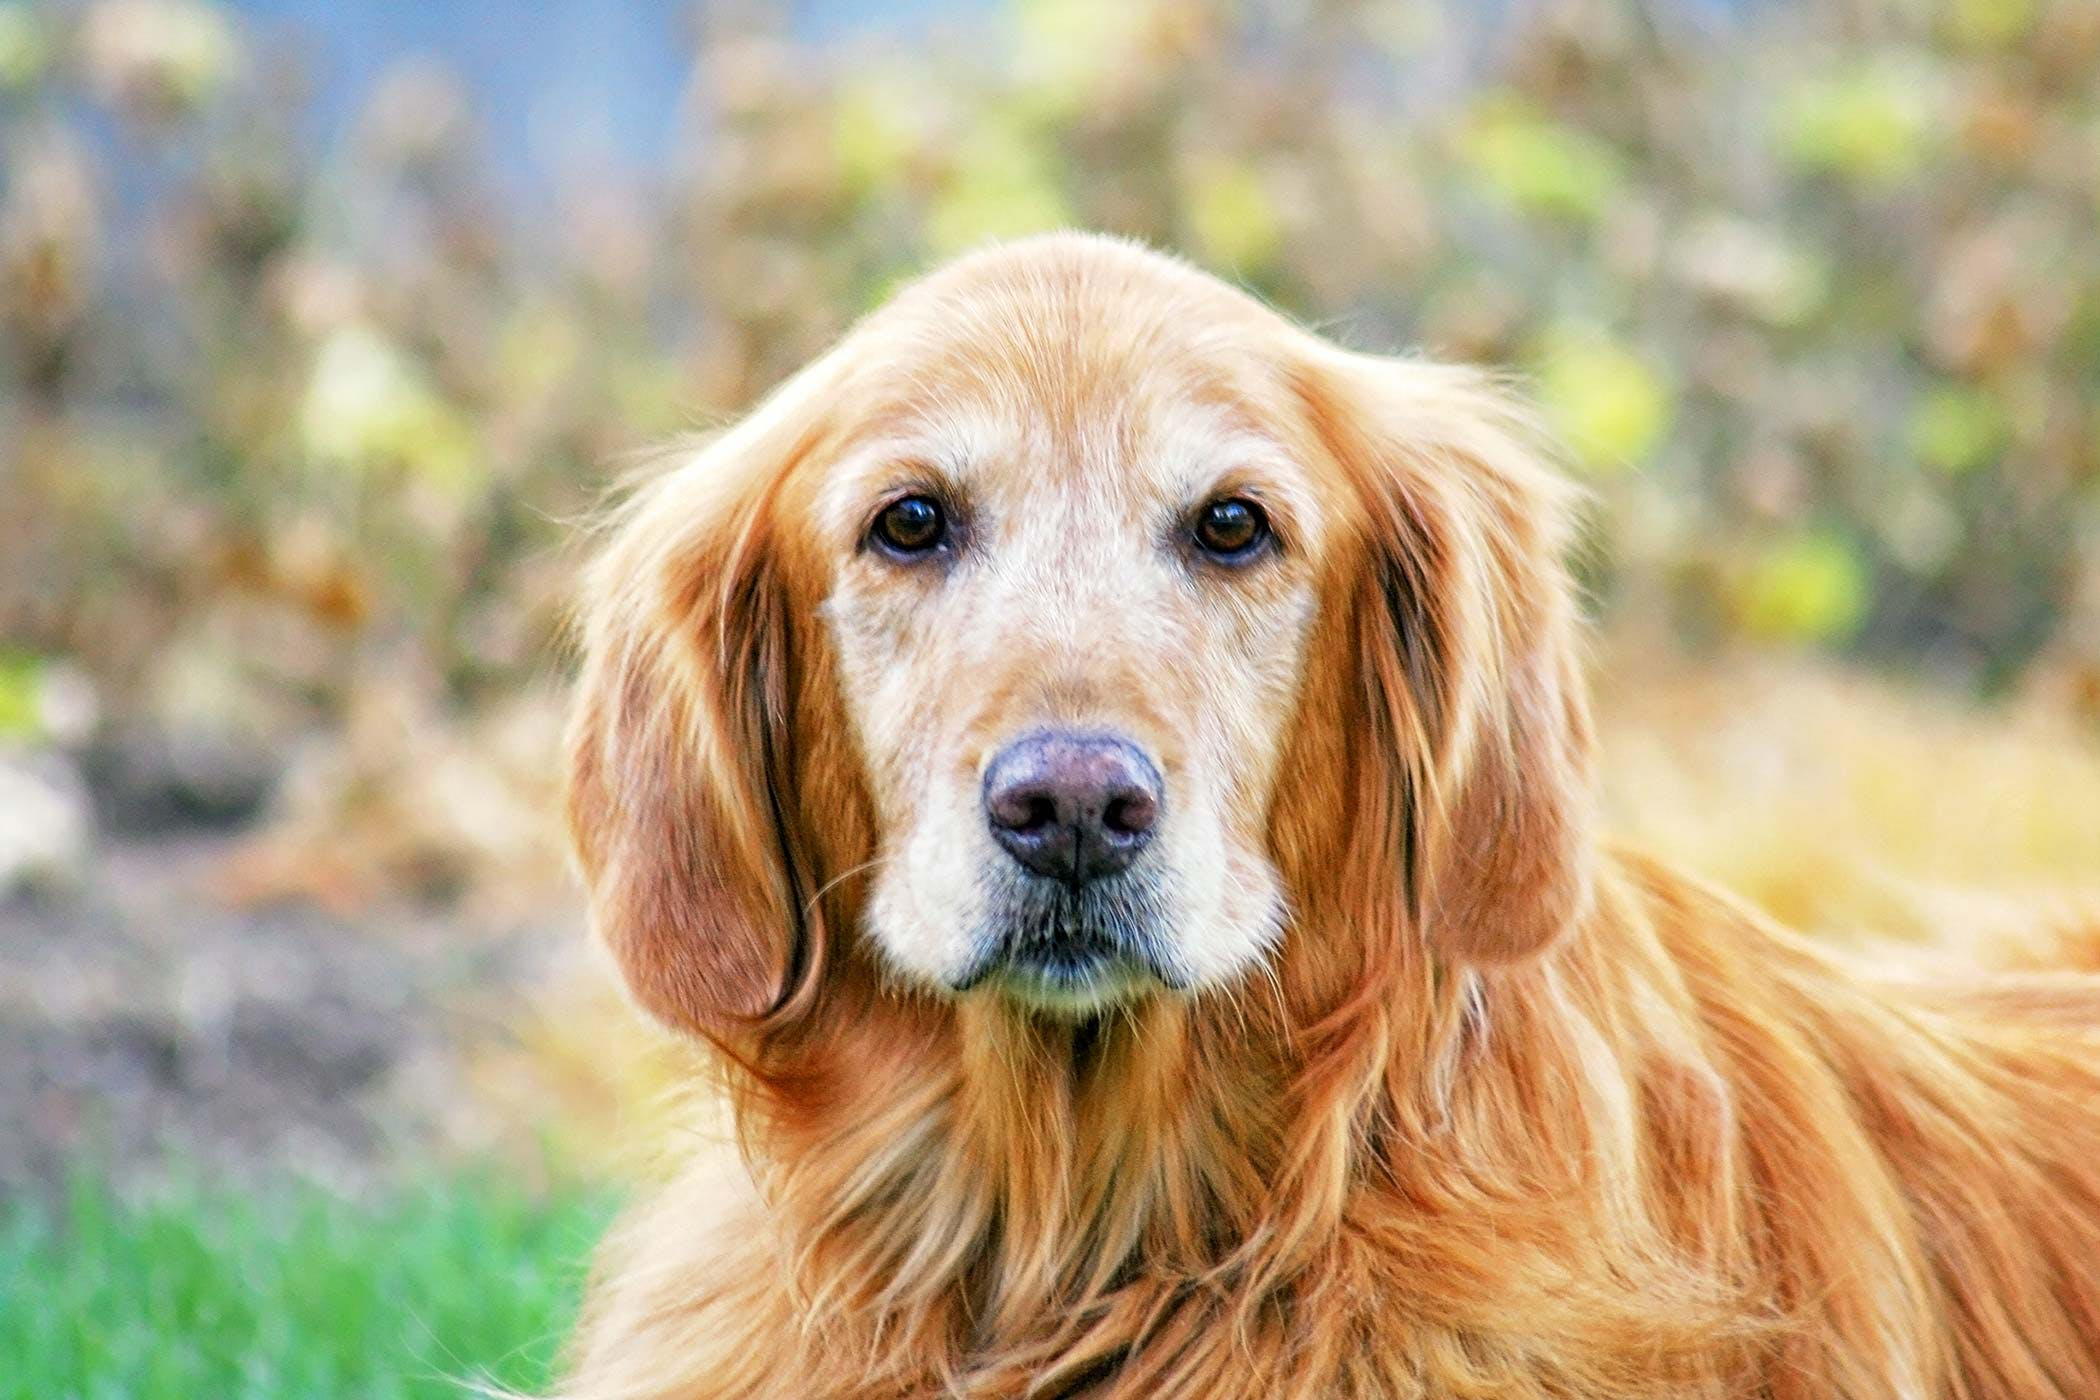 Involuntary Muscle Trembling in Dogs - Symptoms, Causes